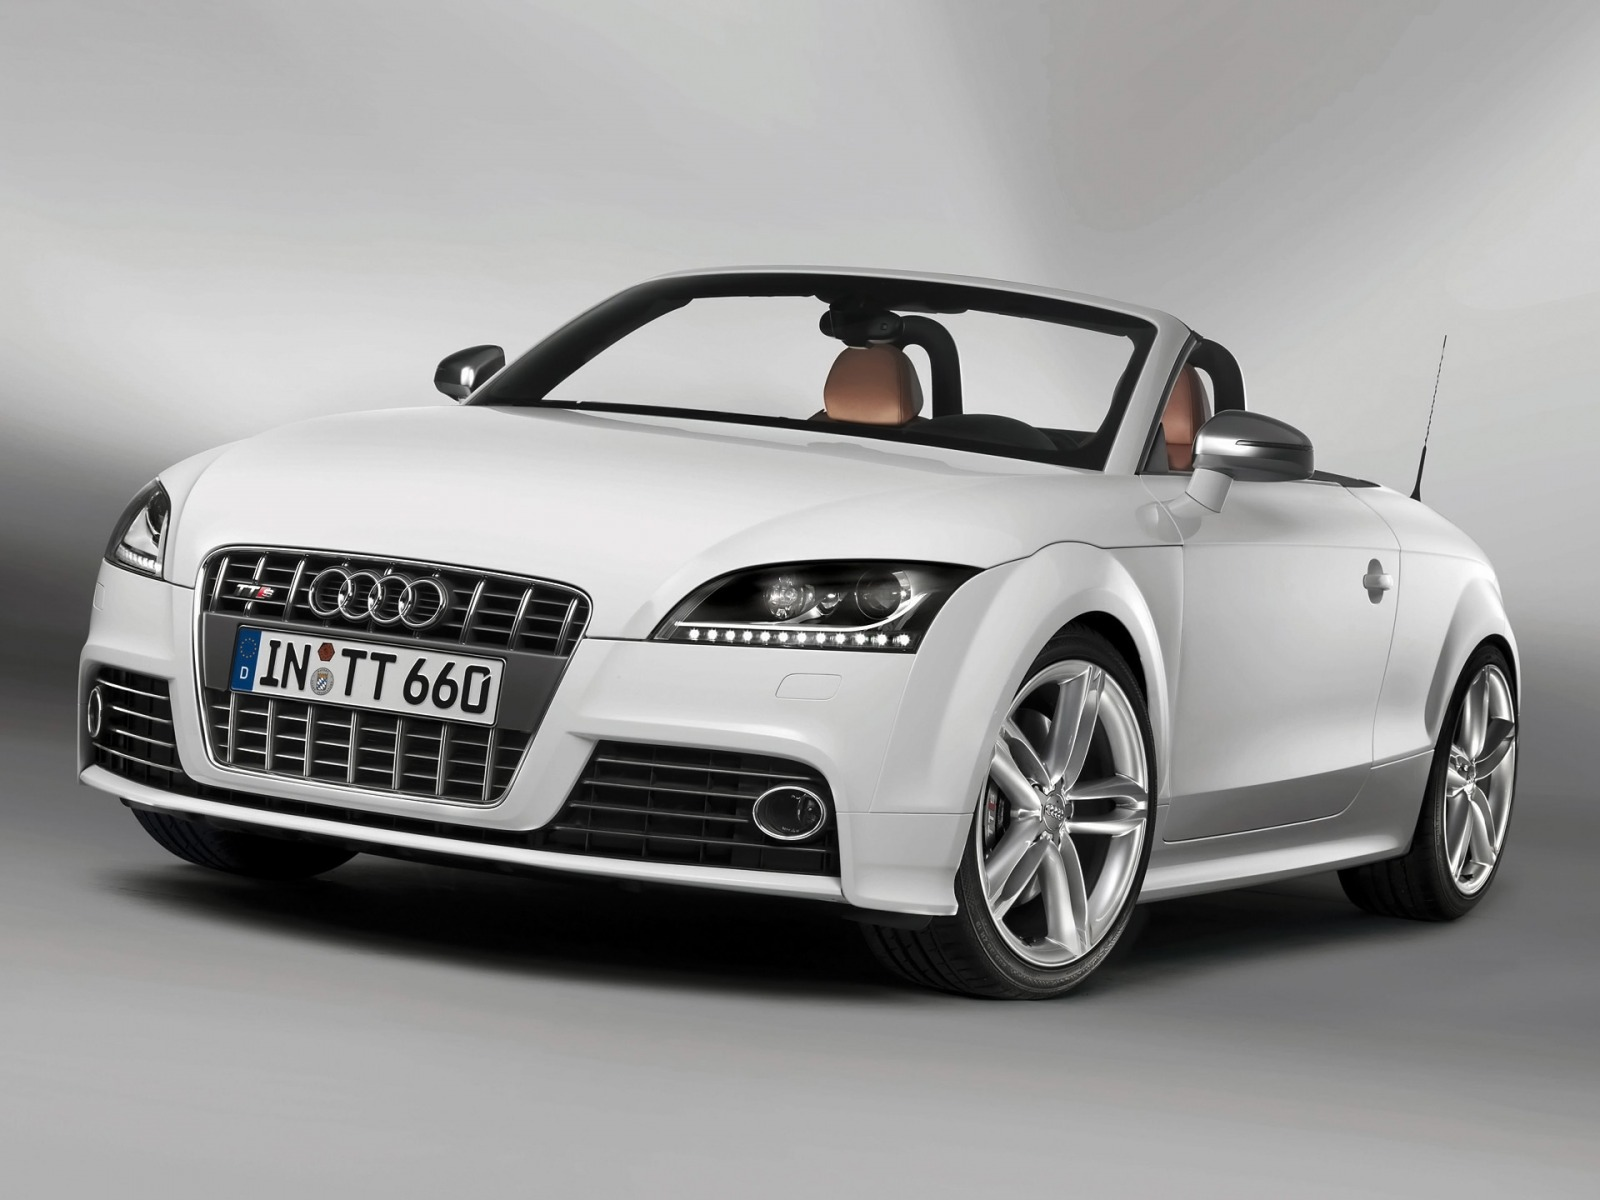 Audi Tts Coupe Wallpaper Audi Cars Wallpapers In Jpg Format For Free